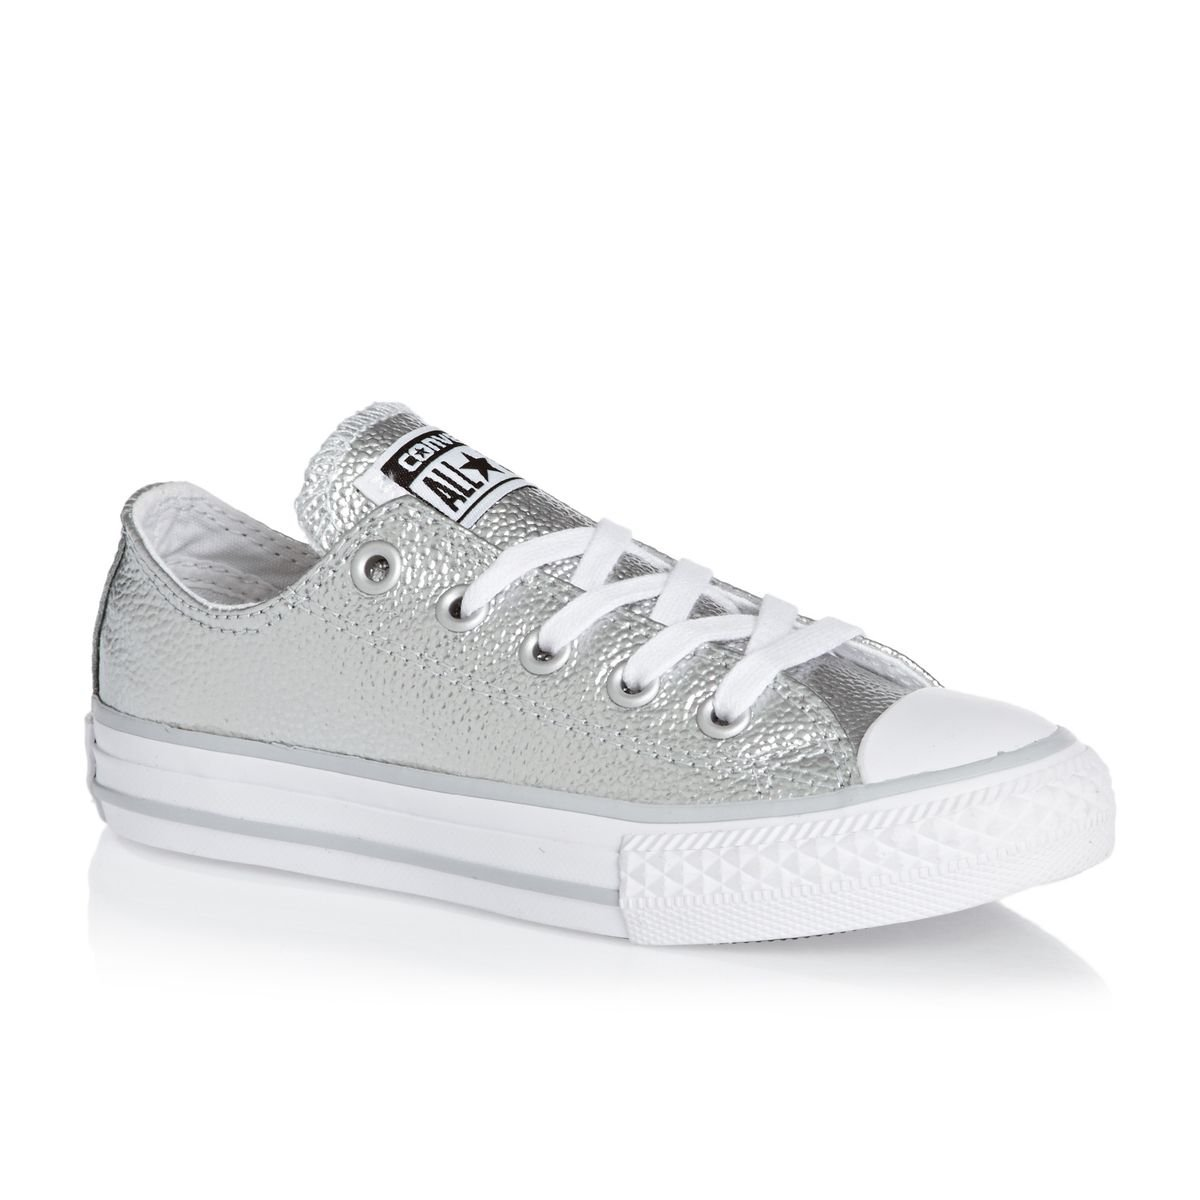 Converse Chuck Taylor All Star Leather Metallic Ox Junior Trainer Silver US 11.5